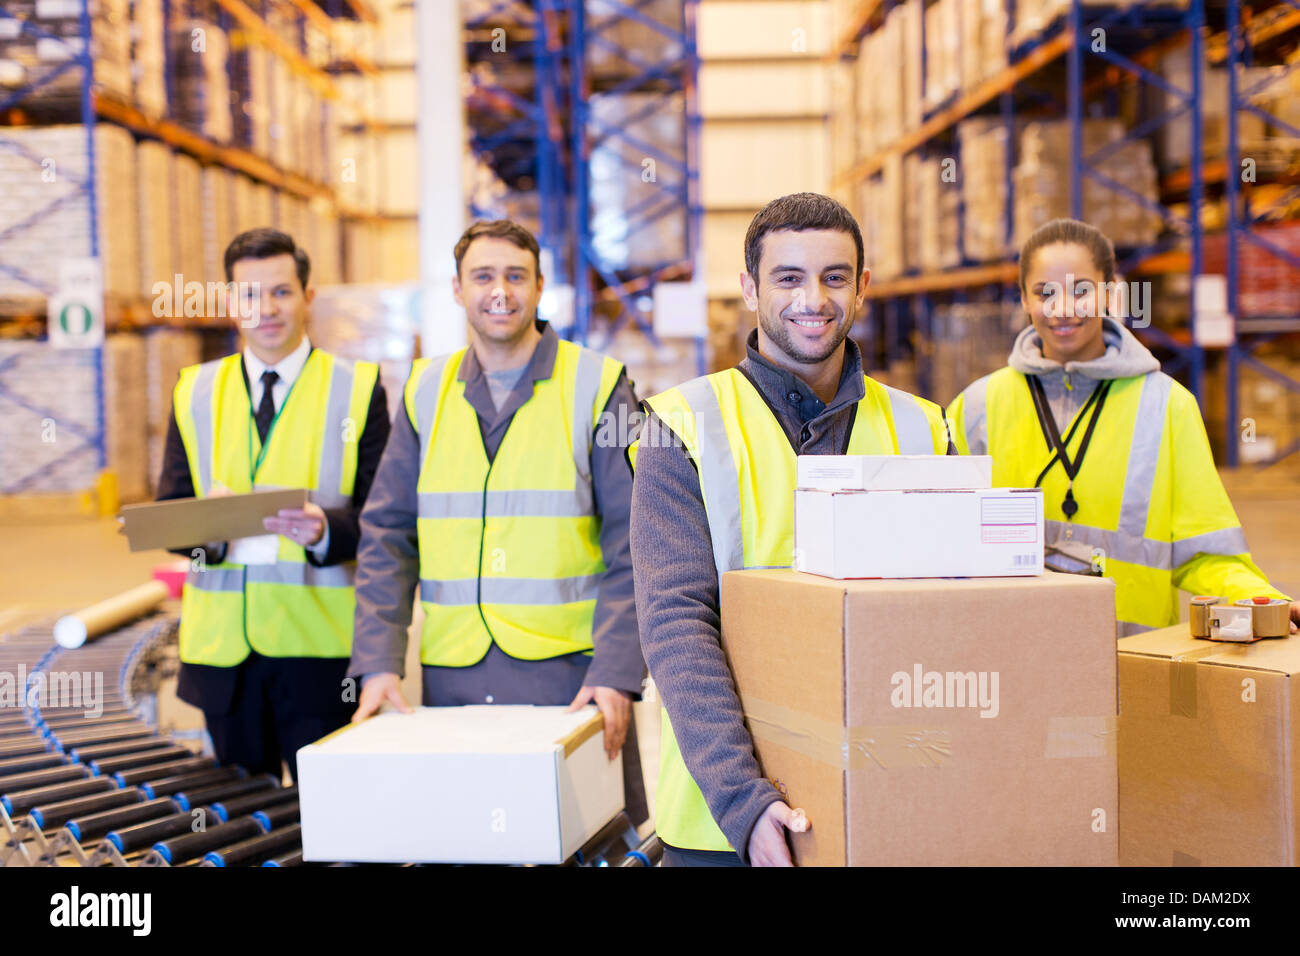 Workers smiling by conveyor belt in warehouse - Stock Image